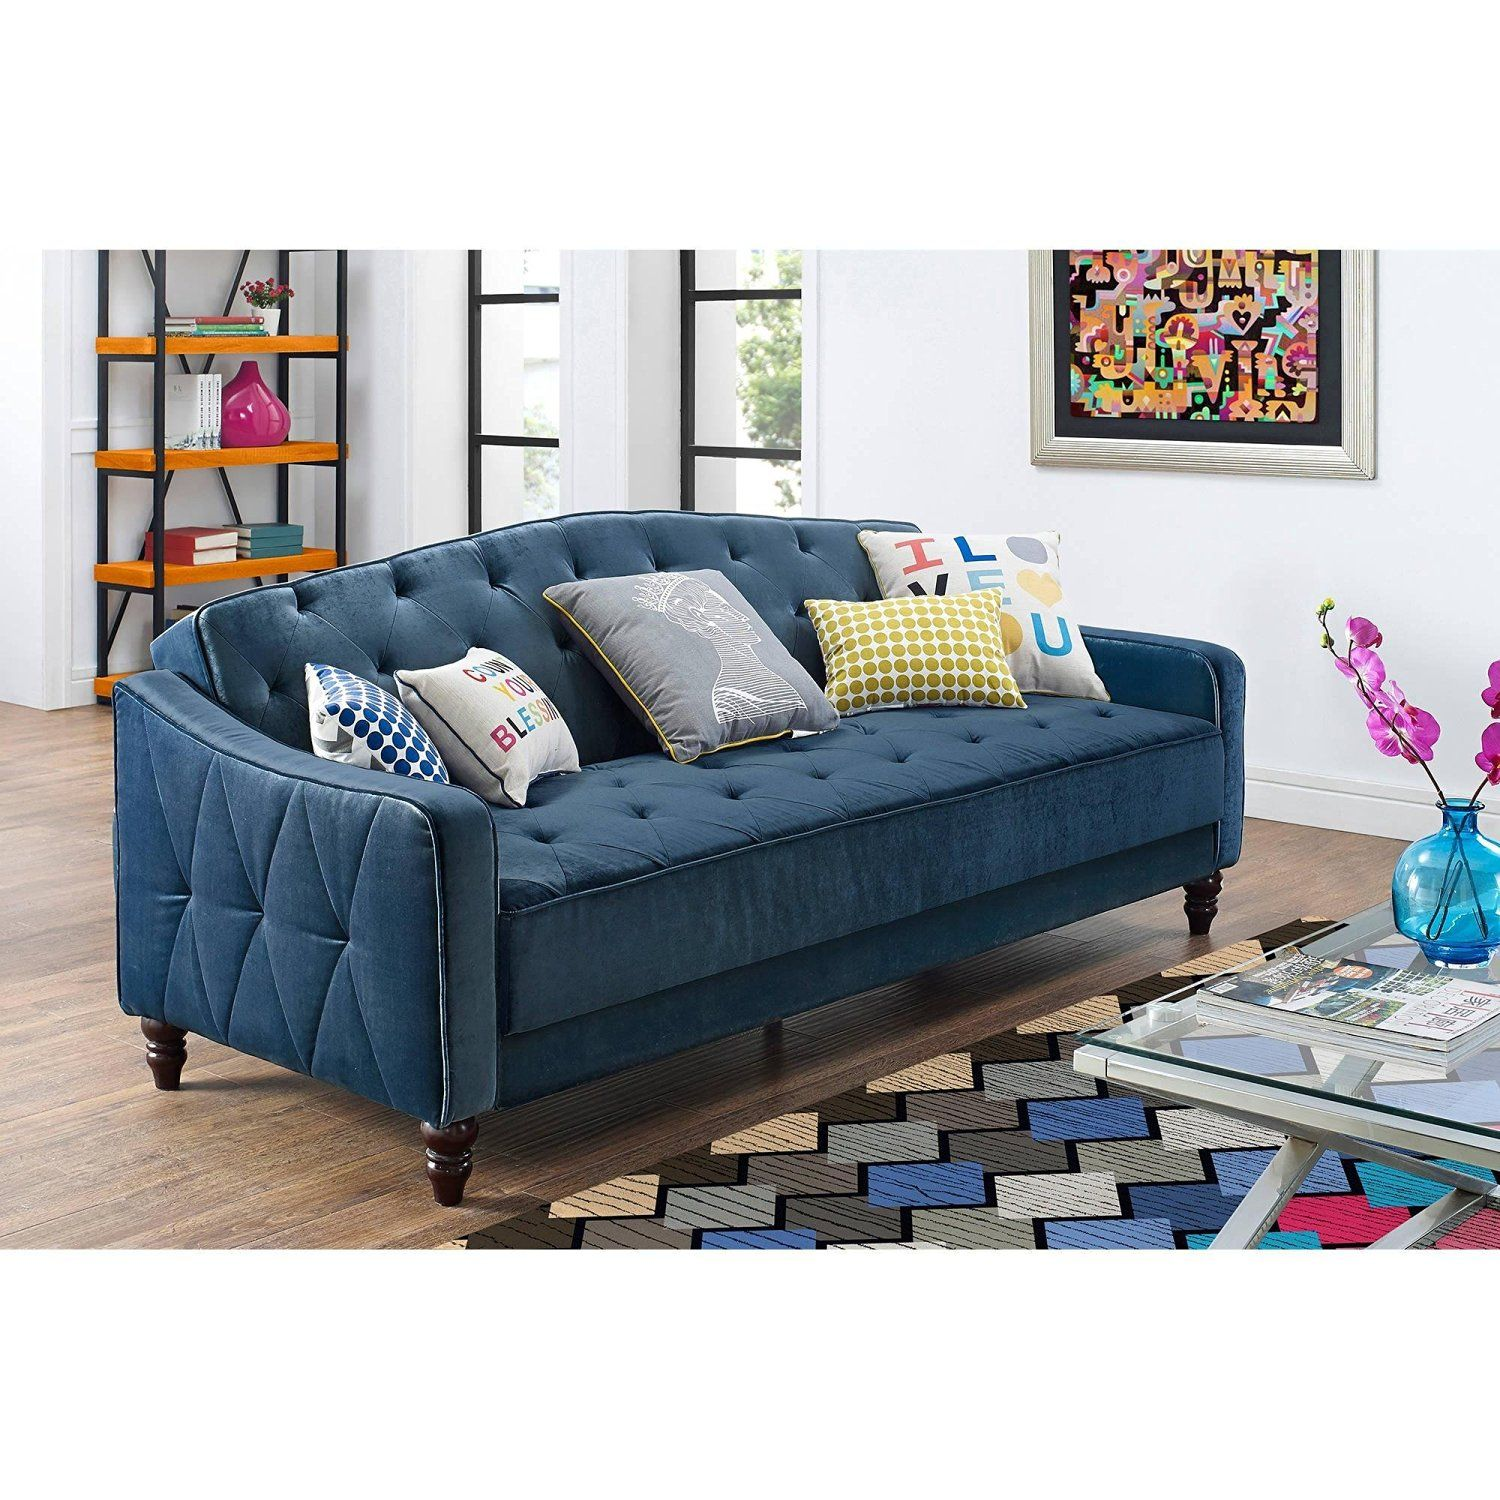 Navy Blue Vintage Style Tufted Velour Sofa Bed Home Kitchen